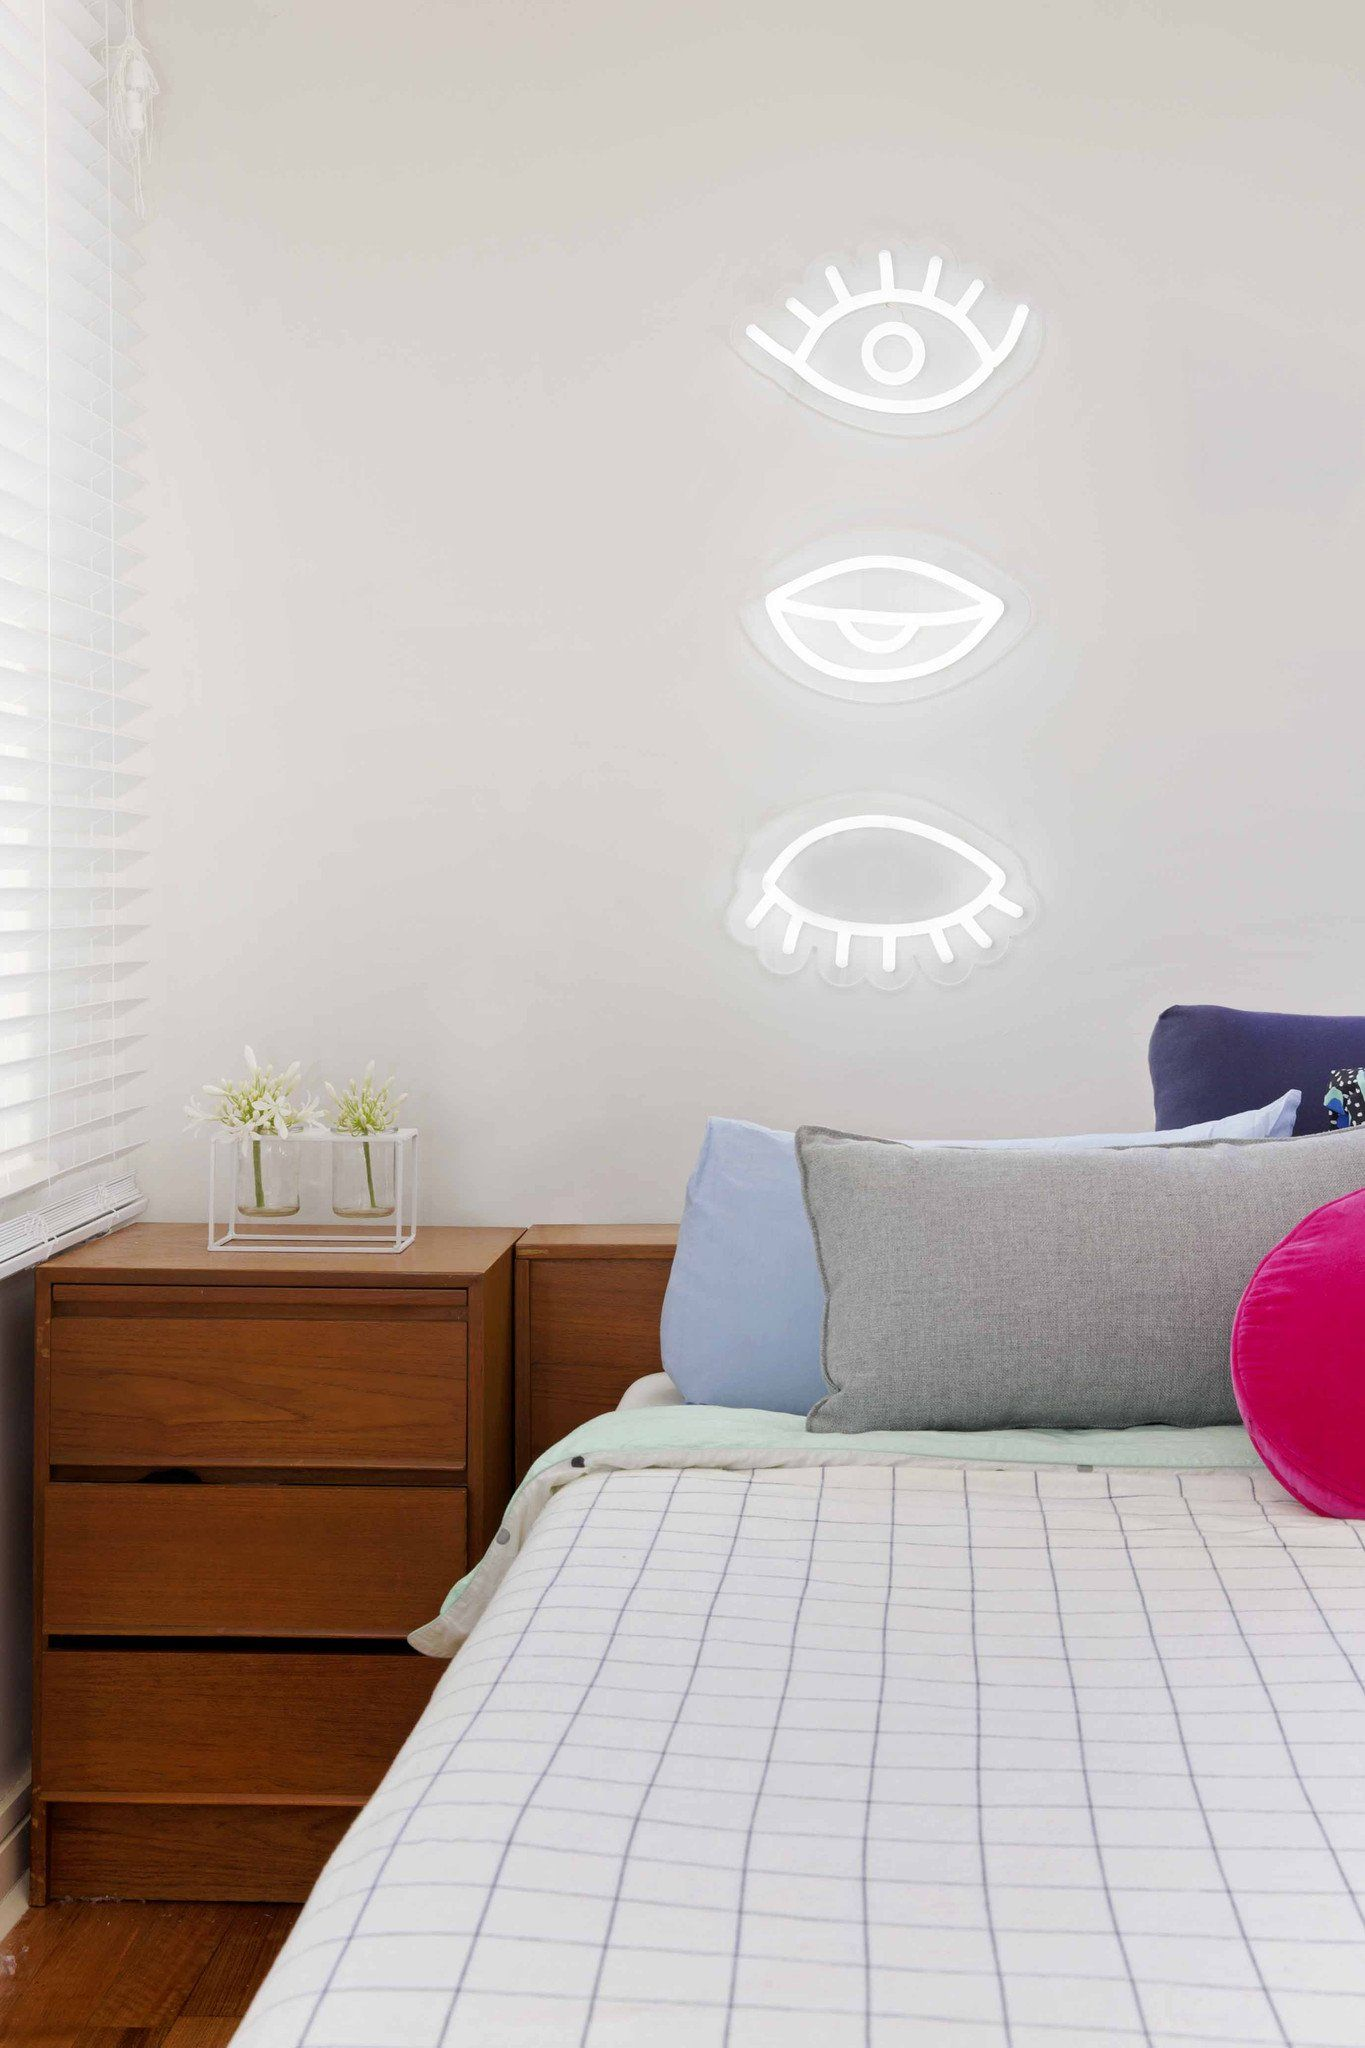 9 Neon Signs That Keep Those Home Vibes Lit | Neon, Low stock and ...